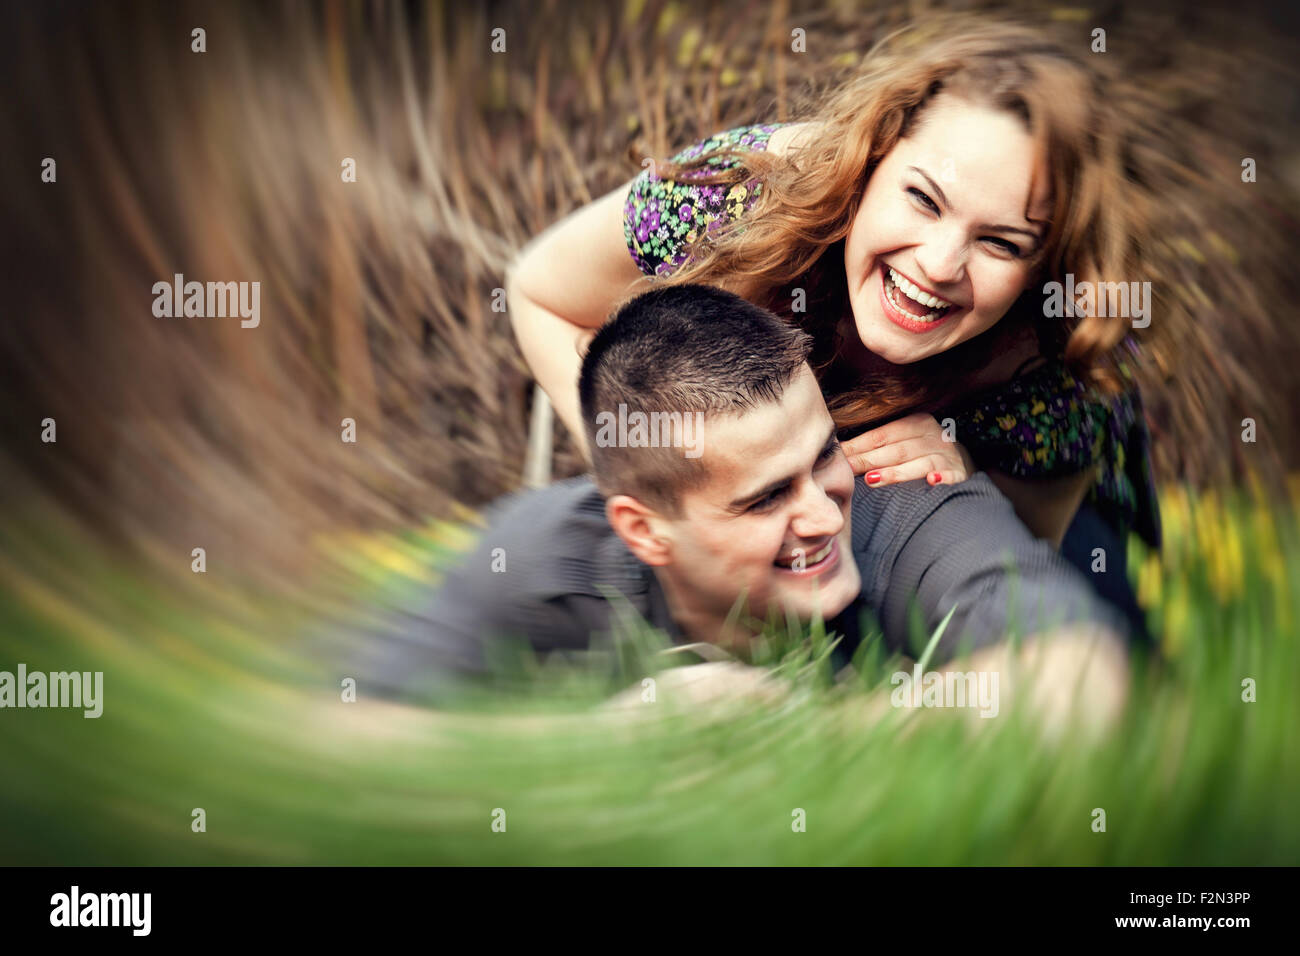 Happy young couple outdoors Photo Stock